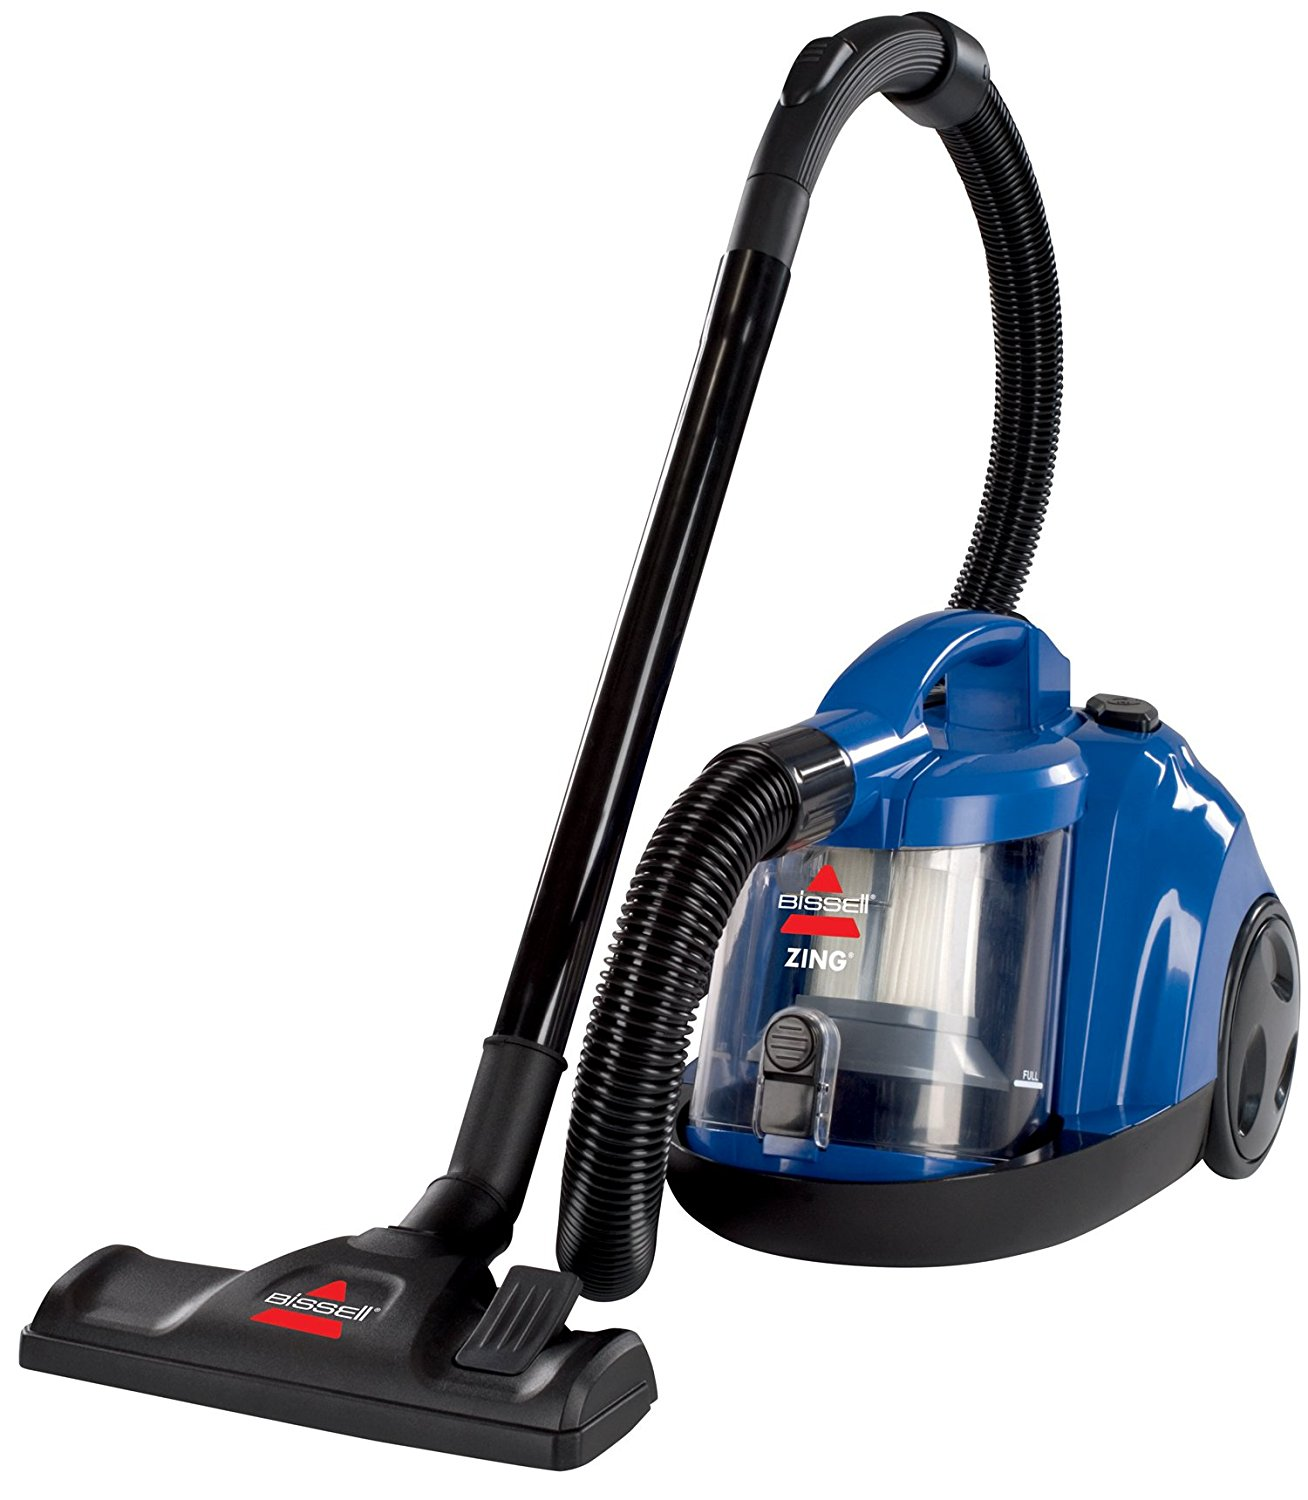 BISSELL Zing Rewind Bagless Canister Vacuum, Corded